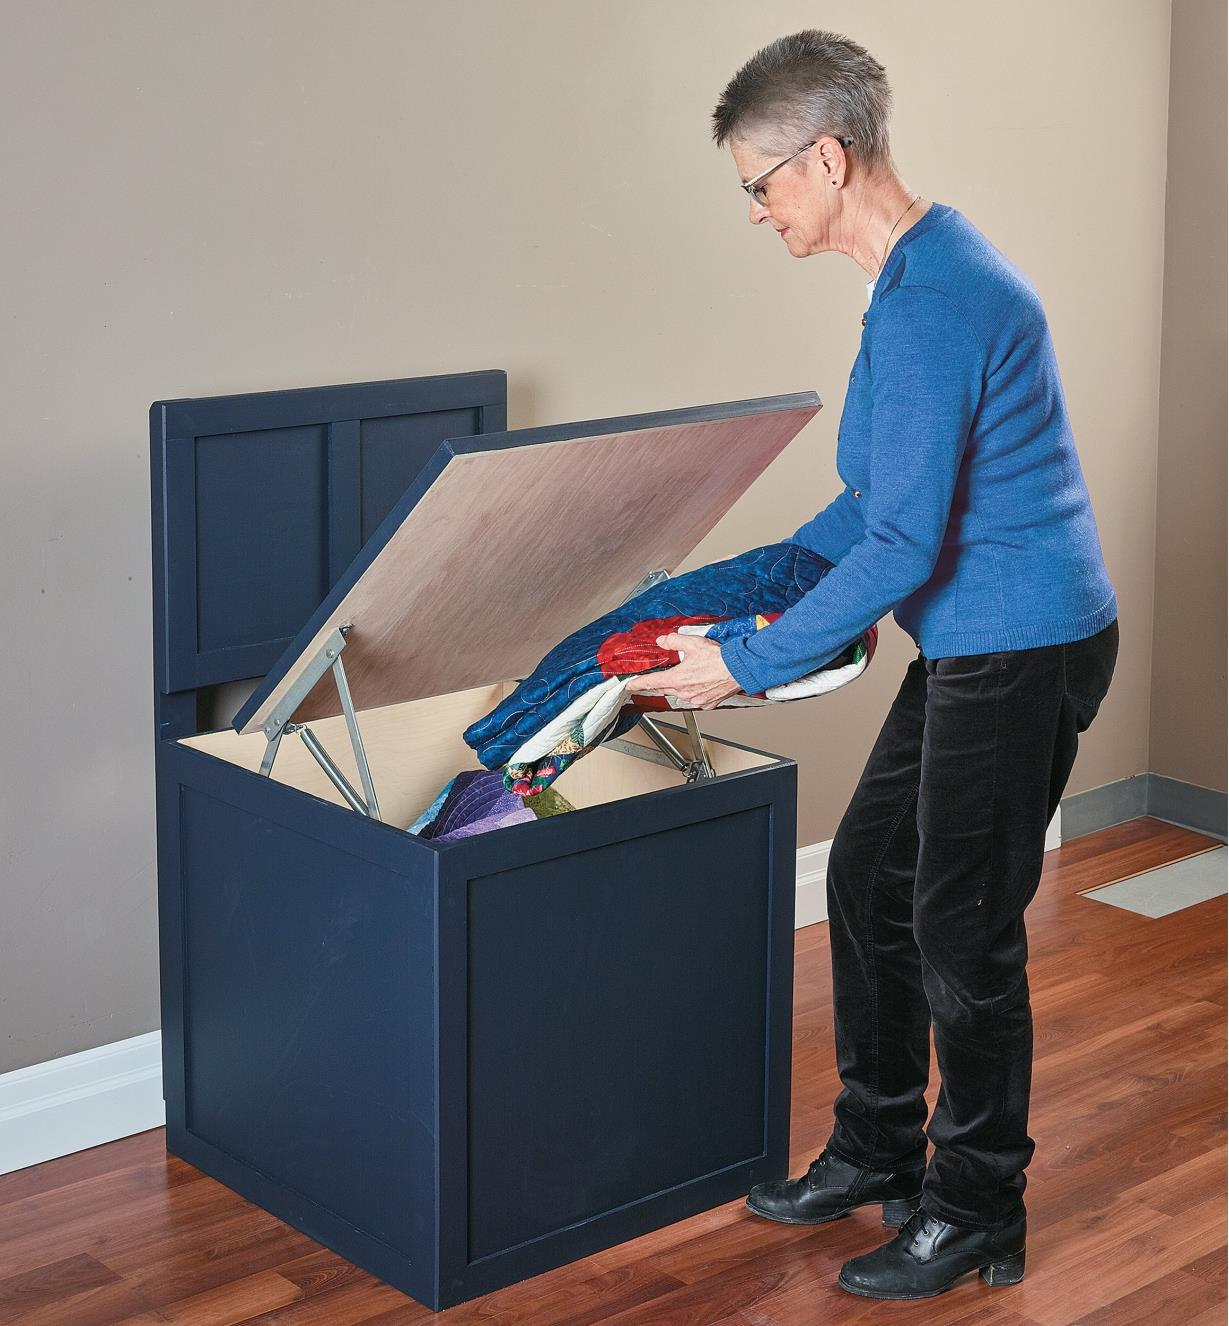 A woman places blankets inside a bench seat storage box made with the Bench Seat Hinges